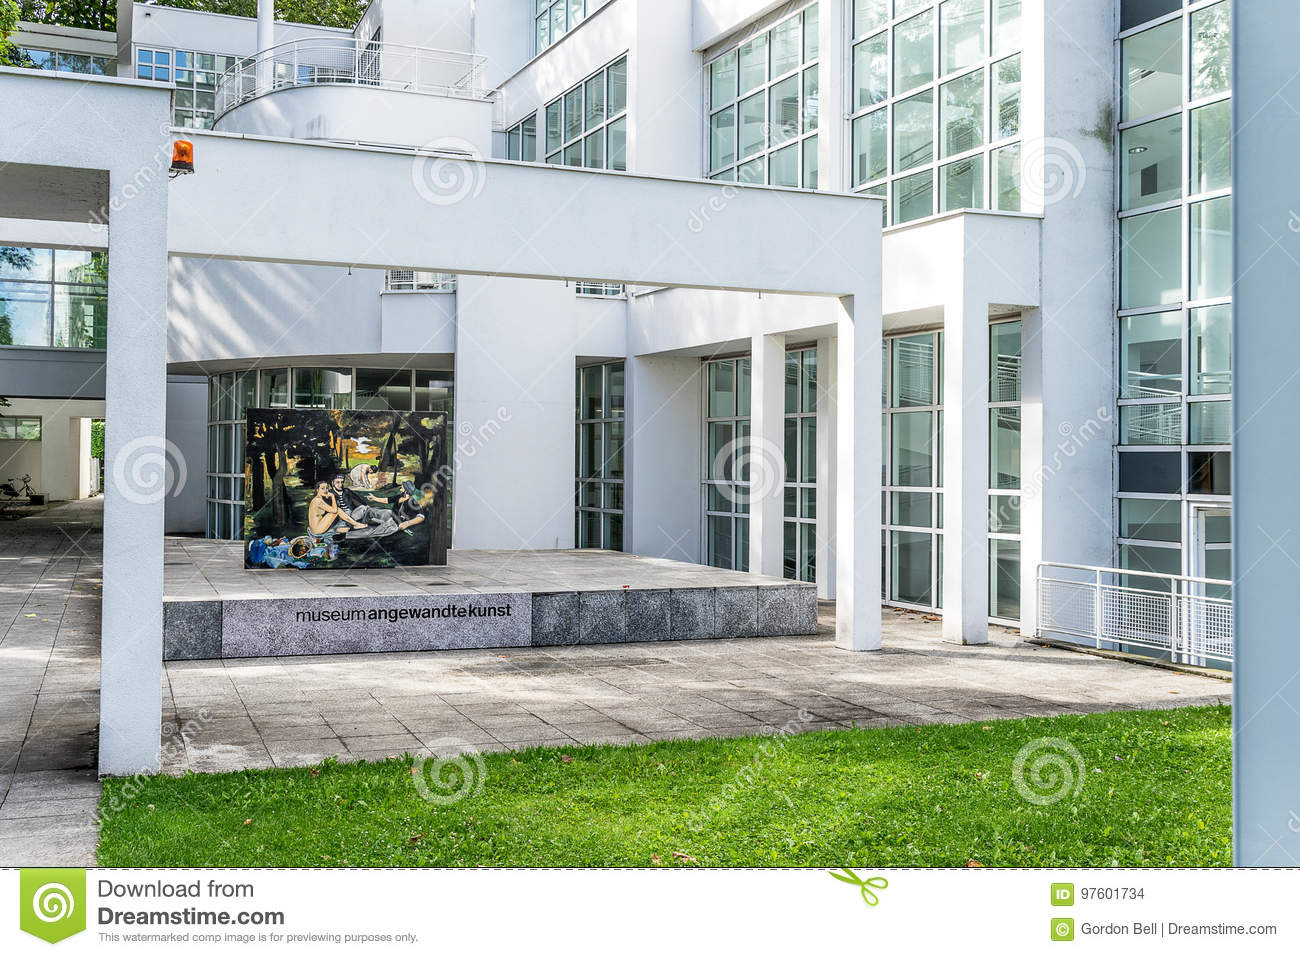 Mak Frankfurt Museum Angewandte Kunst In Frankfurt Editorial Stock Image - Image Of Society, Main: 97601734